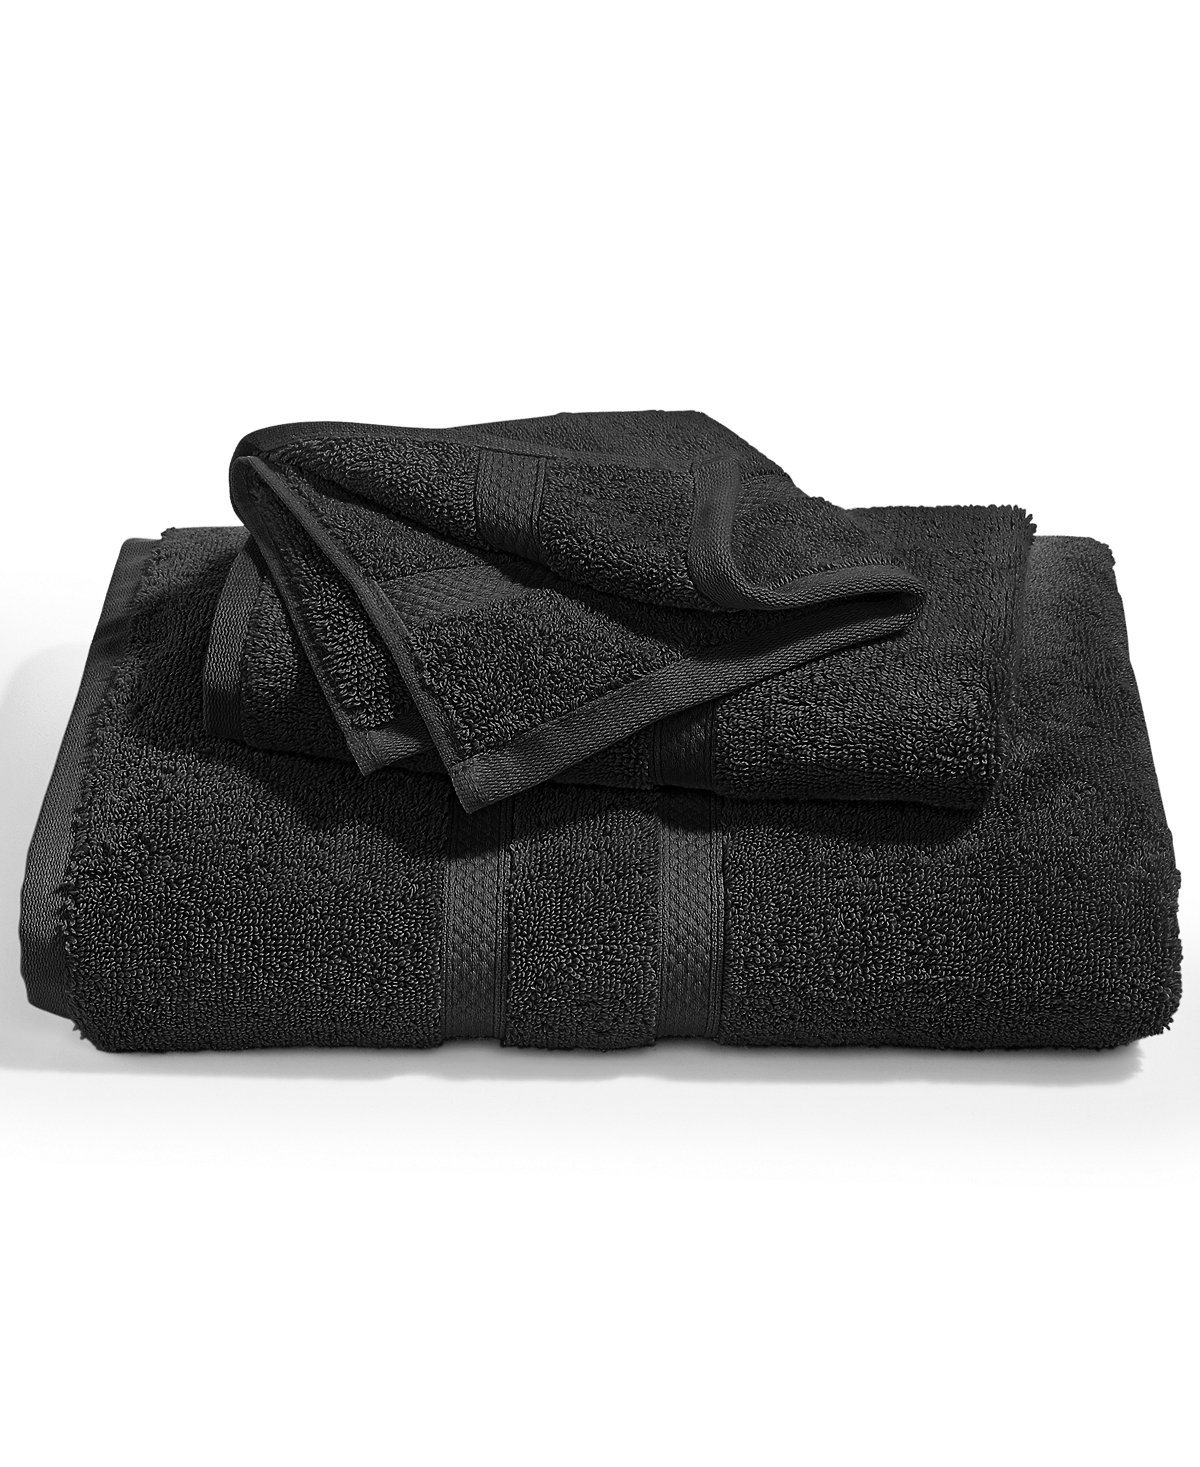 Charter Club Elite Hygro Cotton Bath Towel